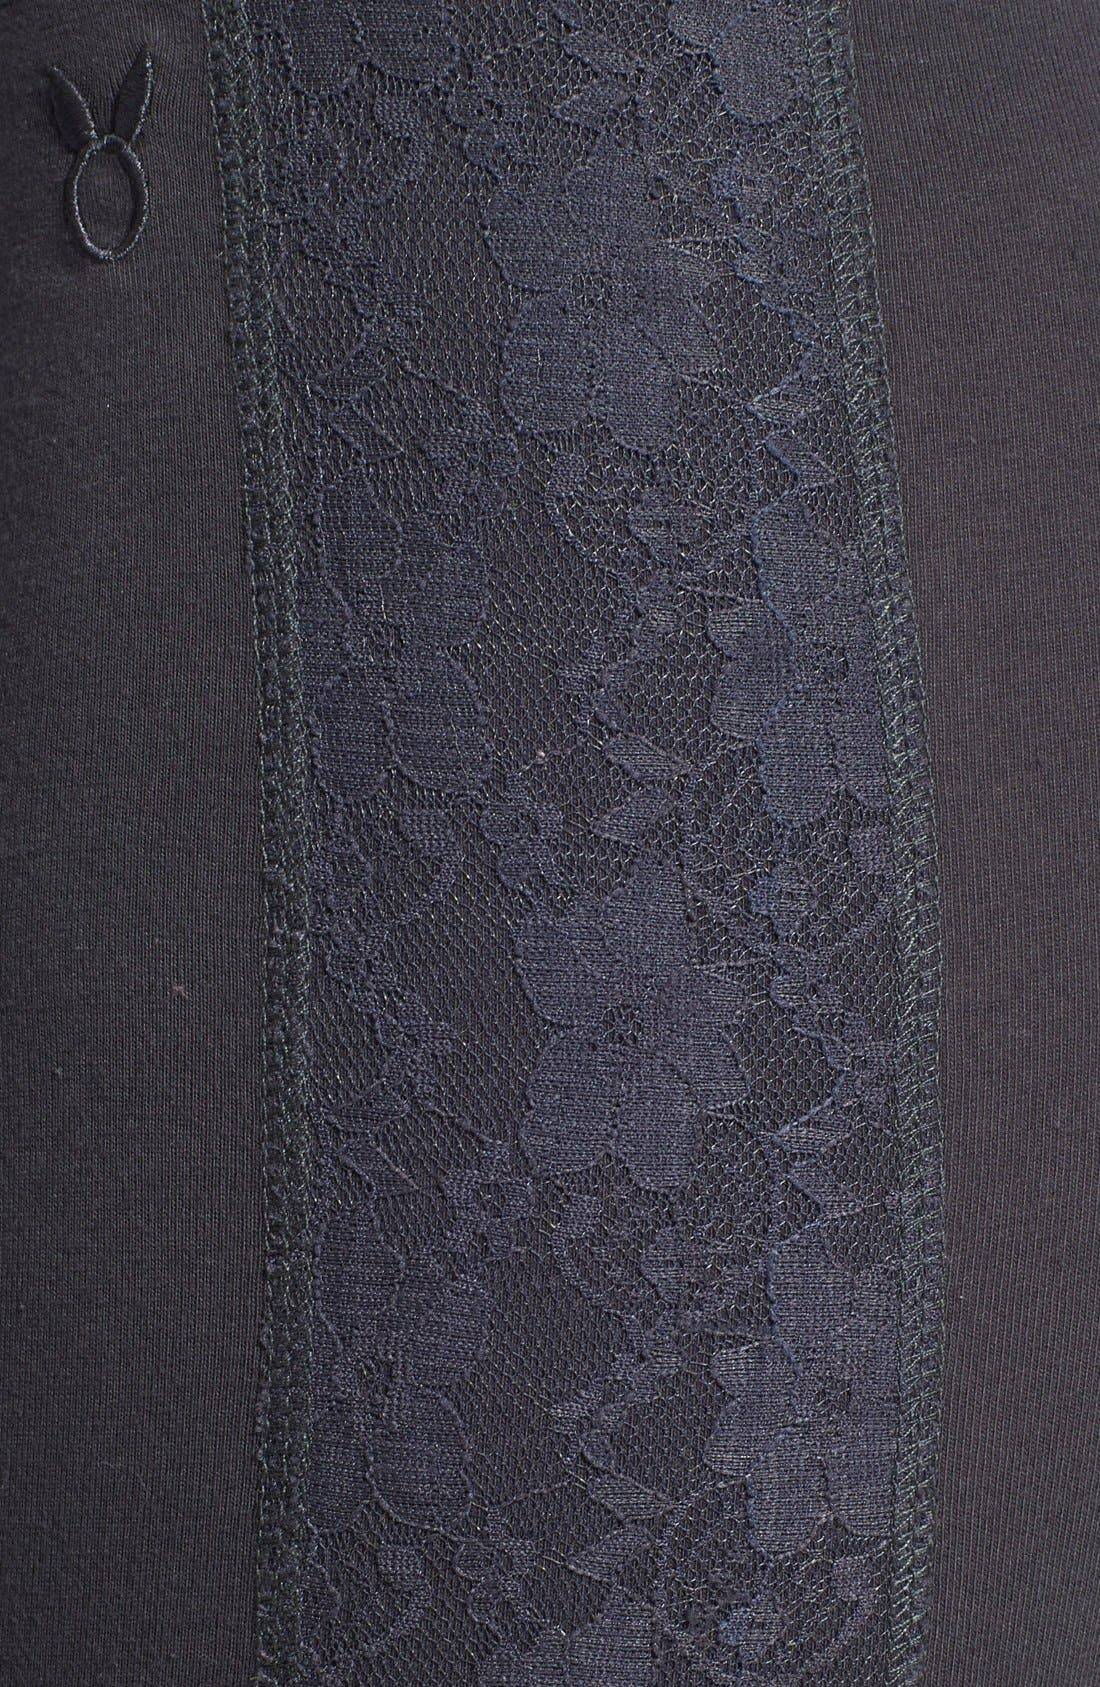 Alternate Image 4  - COZY ZOE 'Heart Breaker' Lace Panel Leggings